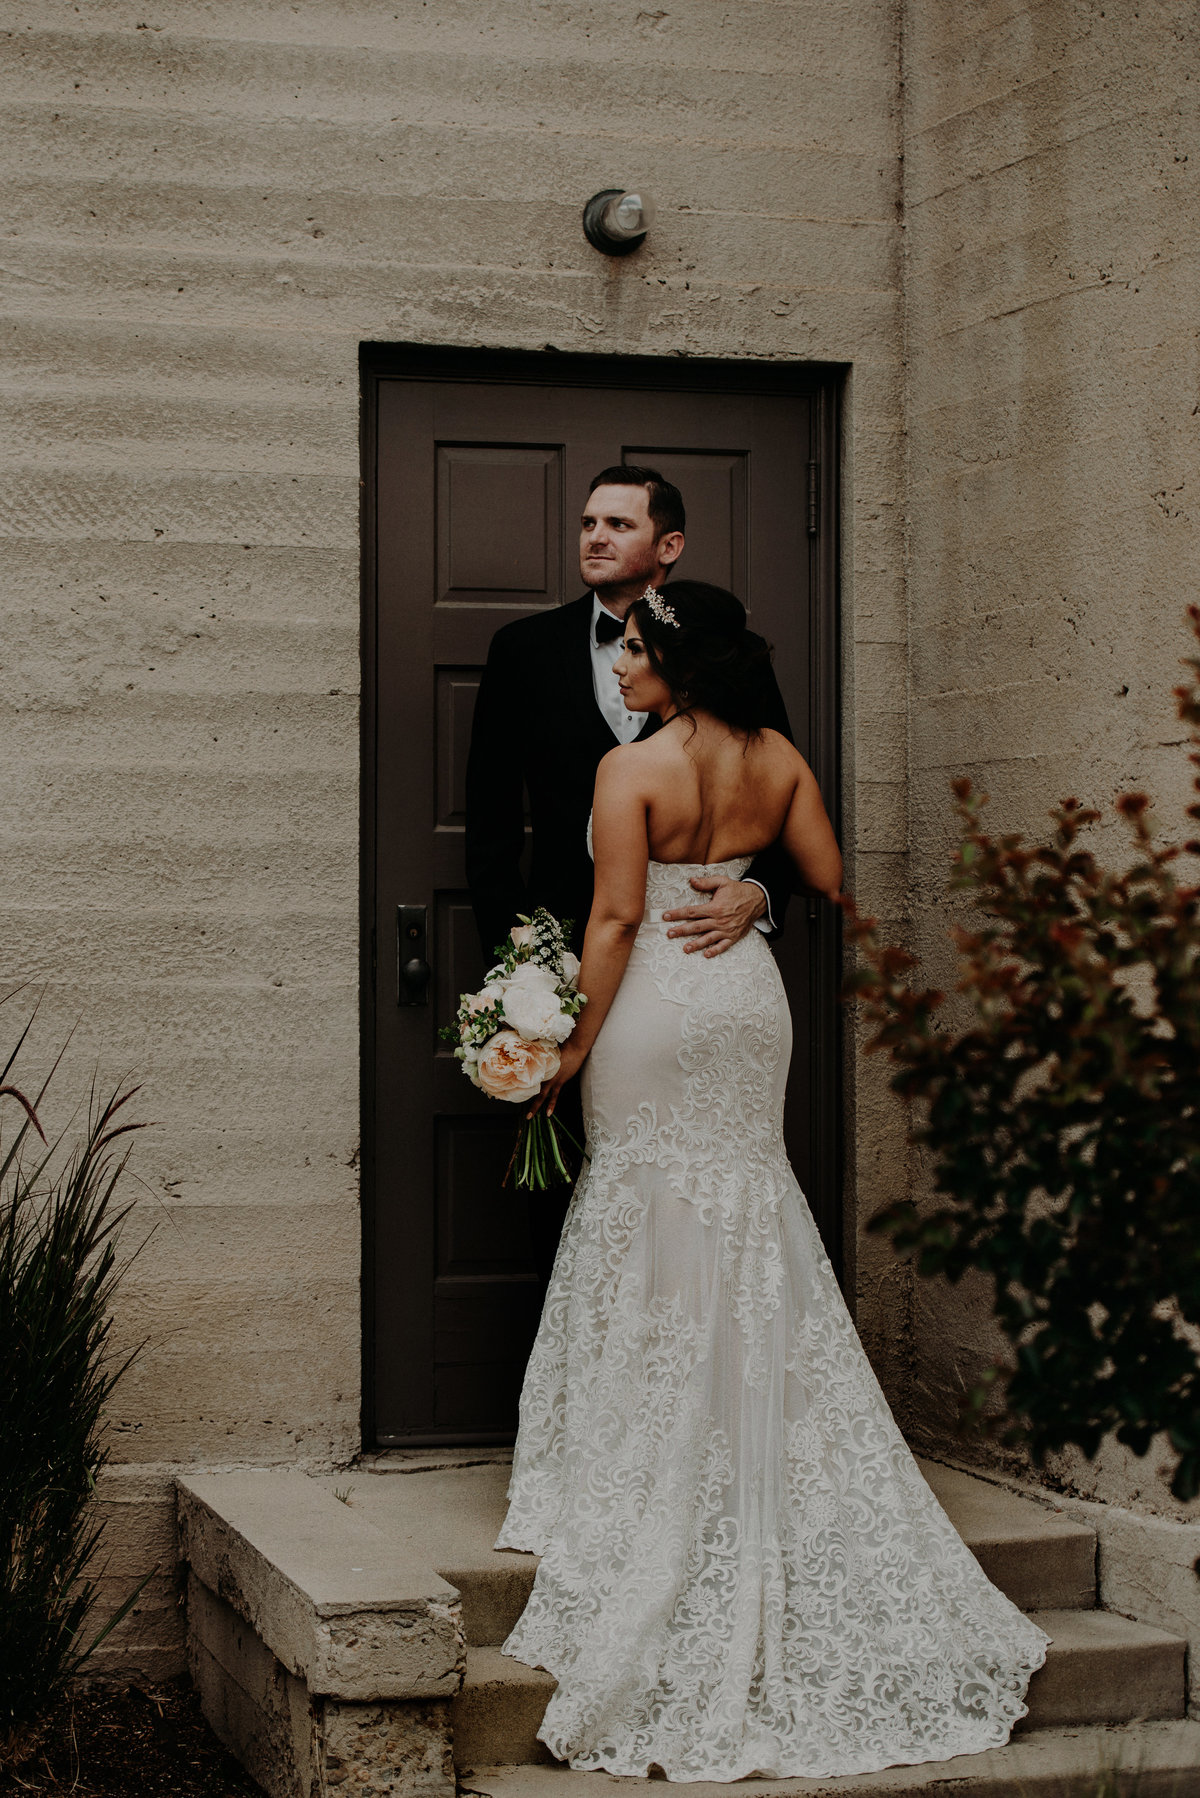 2.FirstLook_BrideGroomPortraits_BakersfieldWedding_NashvilleInspired_RubiZphoto(58of112)